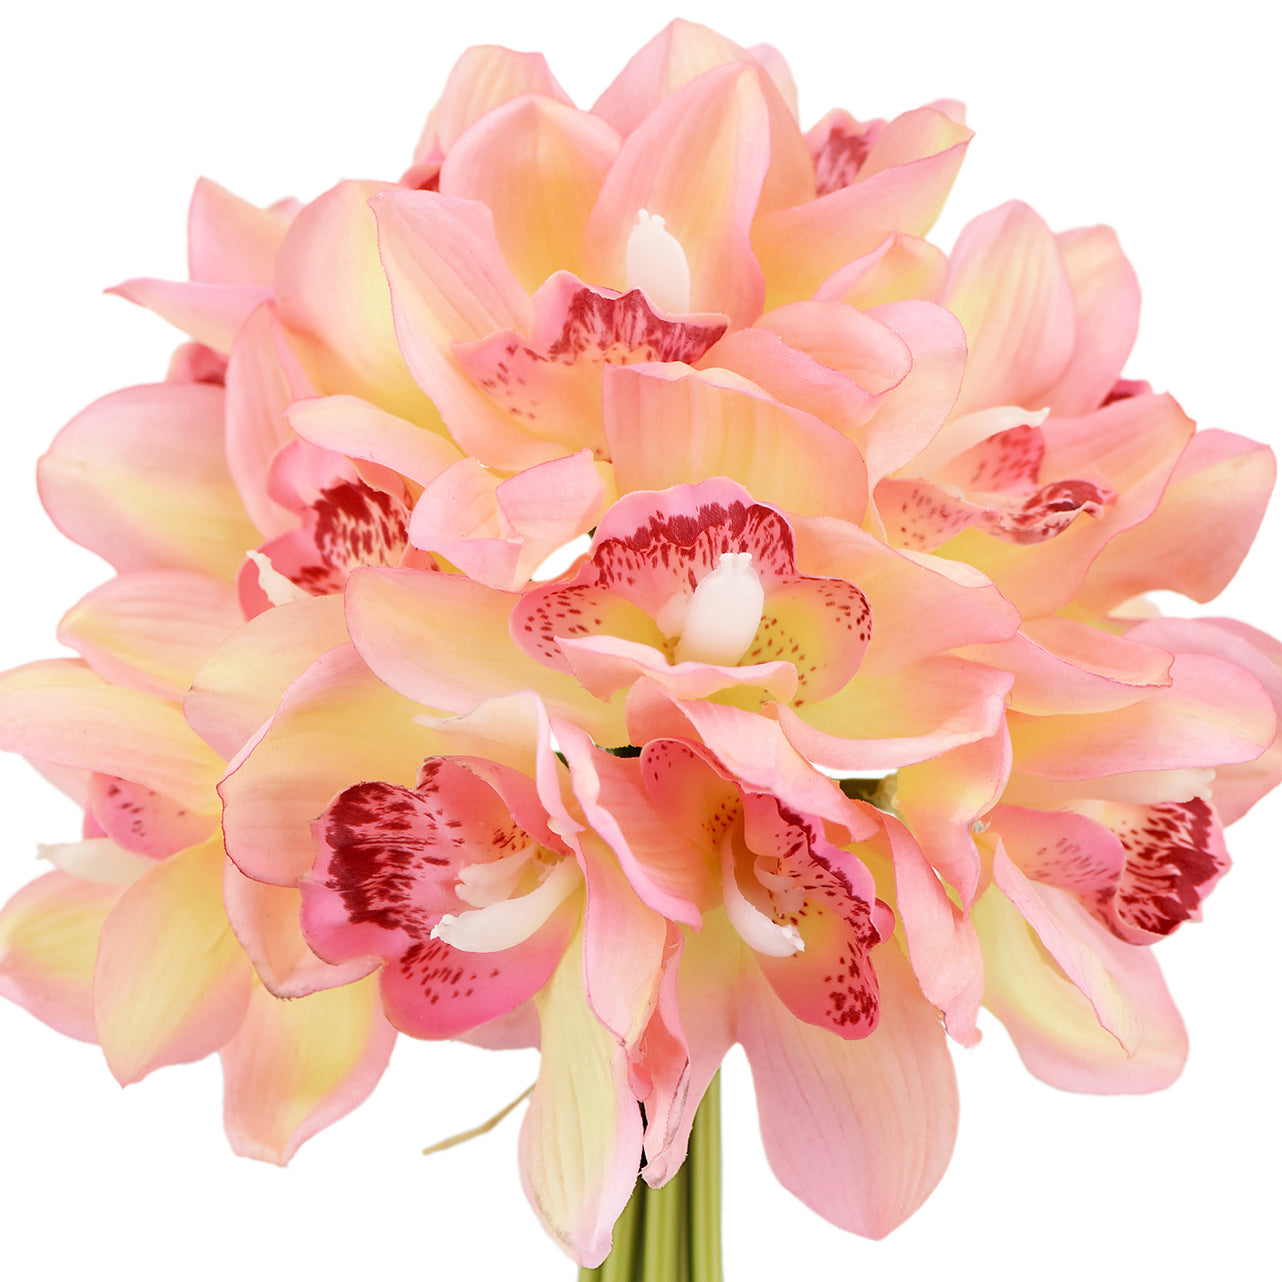 12 Stems Artificial Real Touch Pink Cymbidium Flowers & Bouquet 9.1 Inches (23cm)